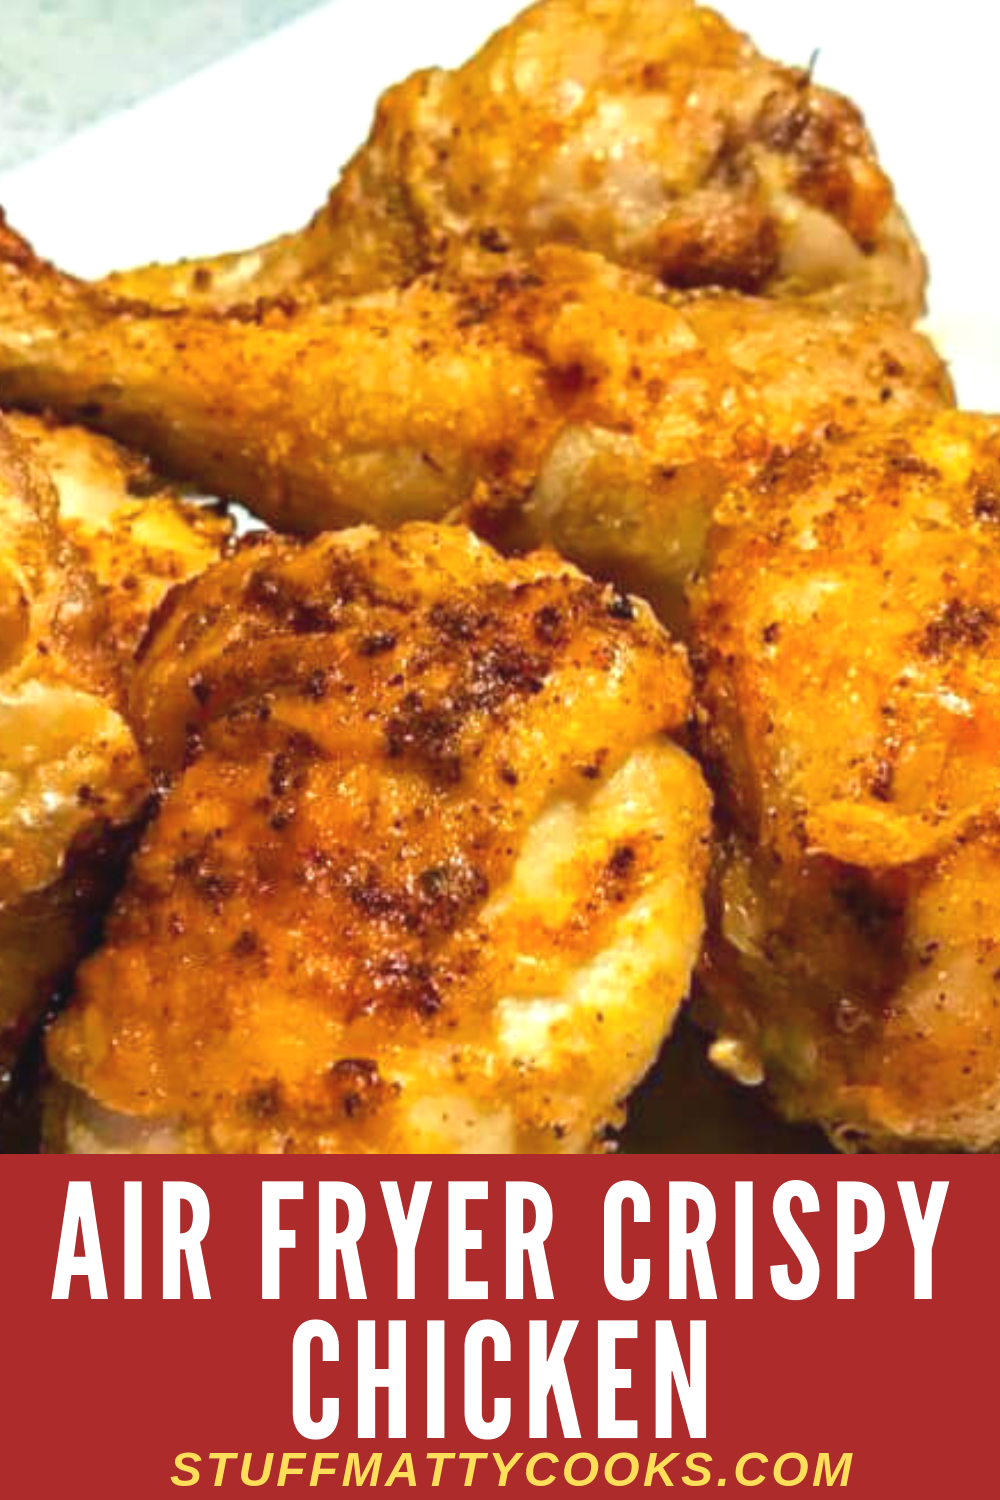 This Airfryer Crispy Chicken Recipe is crunchy and